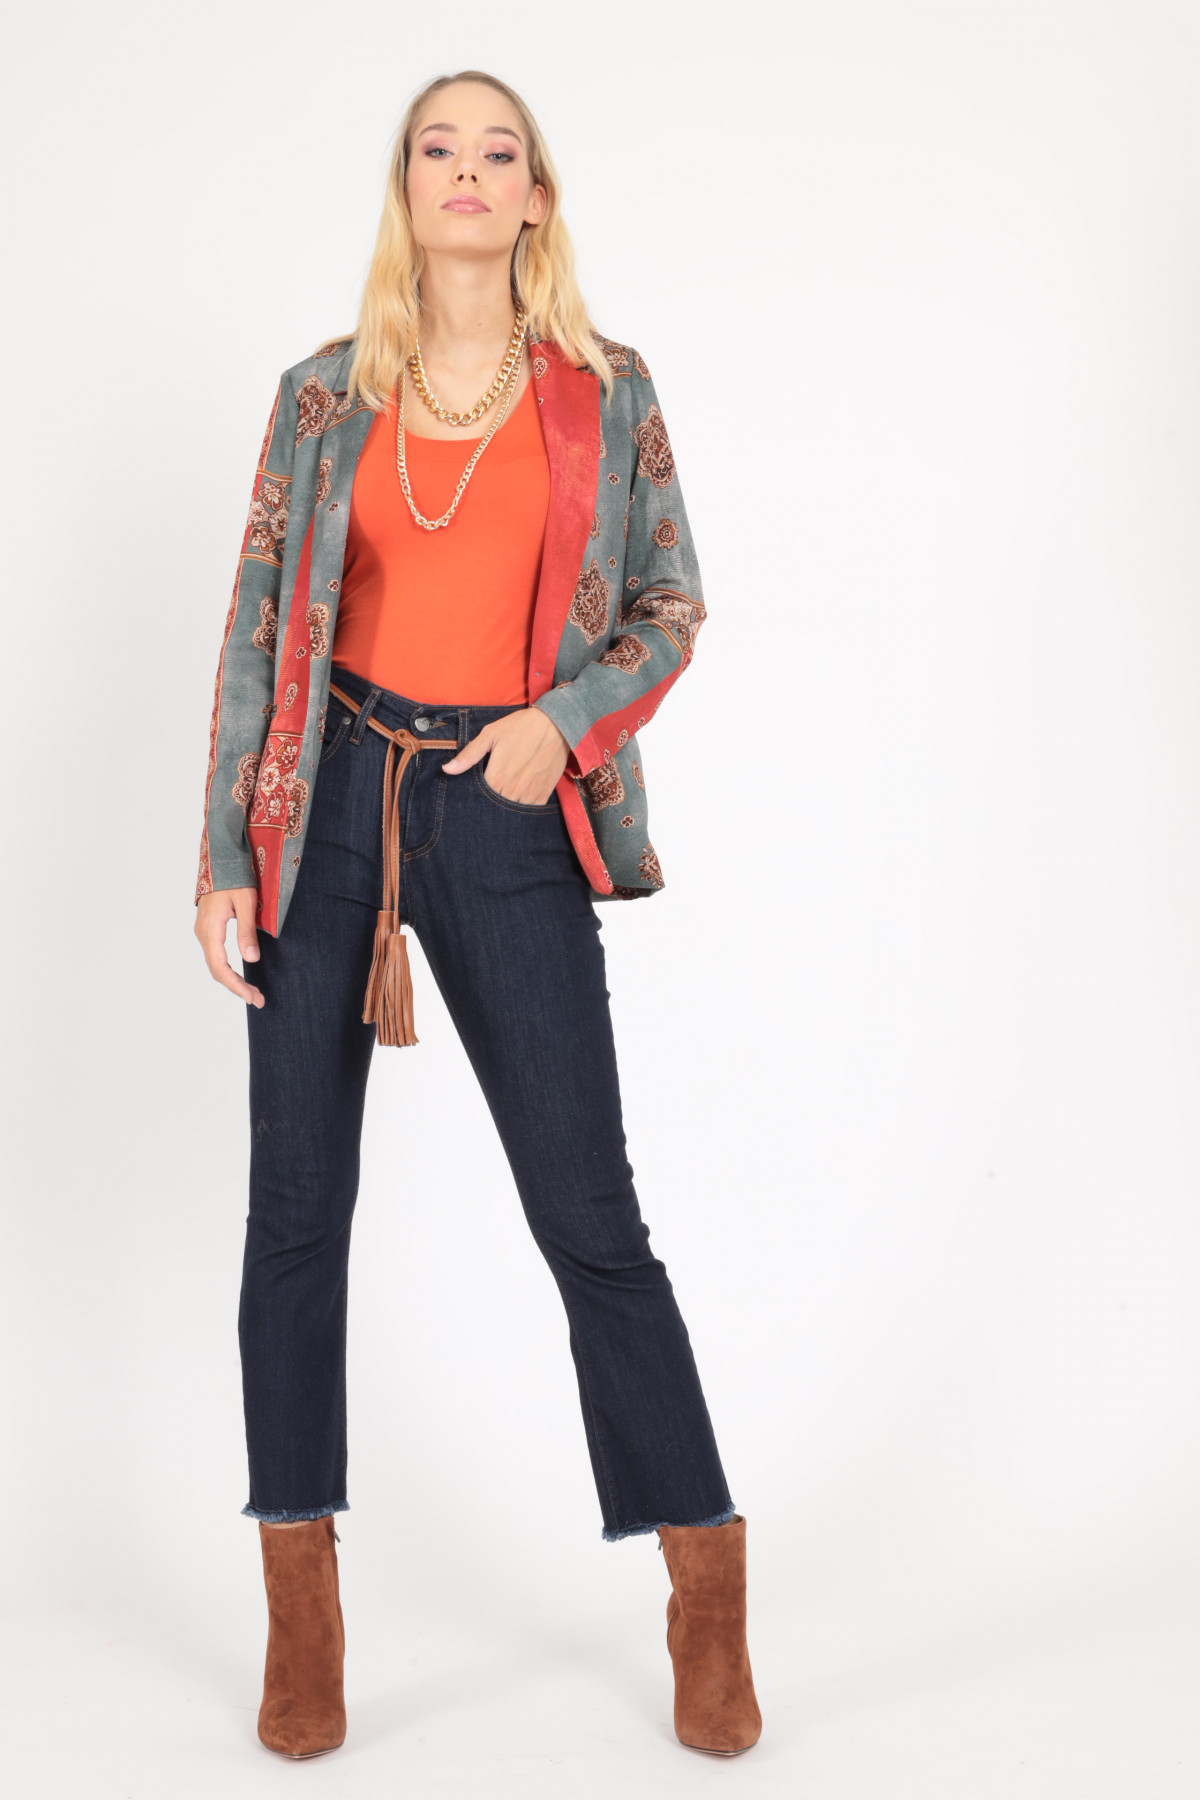 5 Pocket Trumpet Jeans with Fringed Bottom